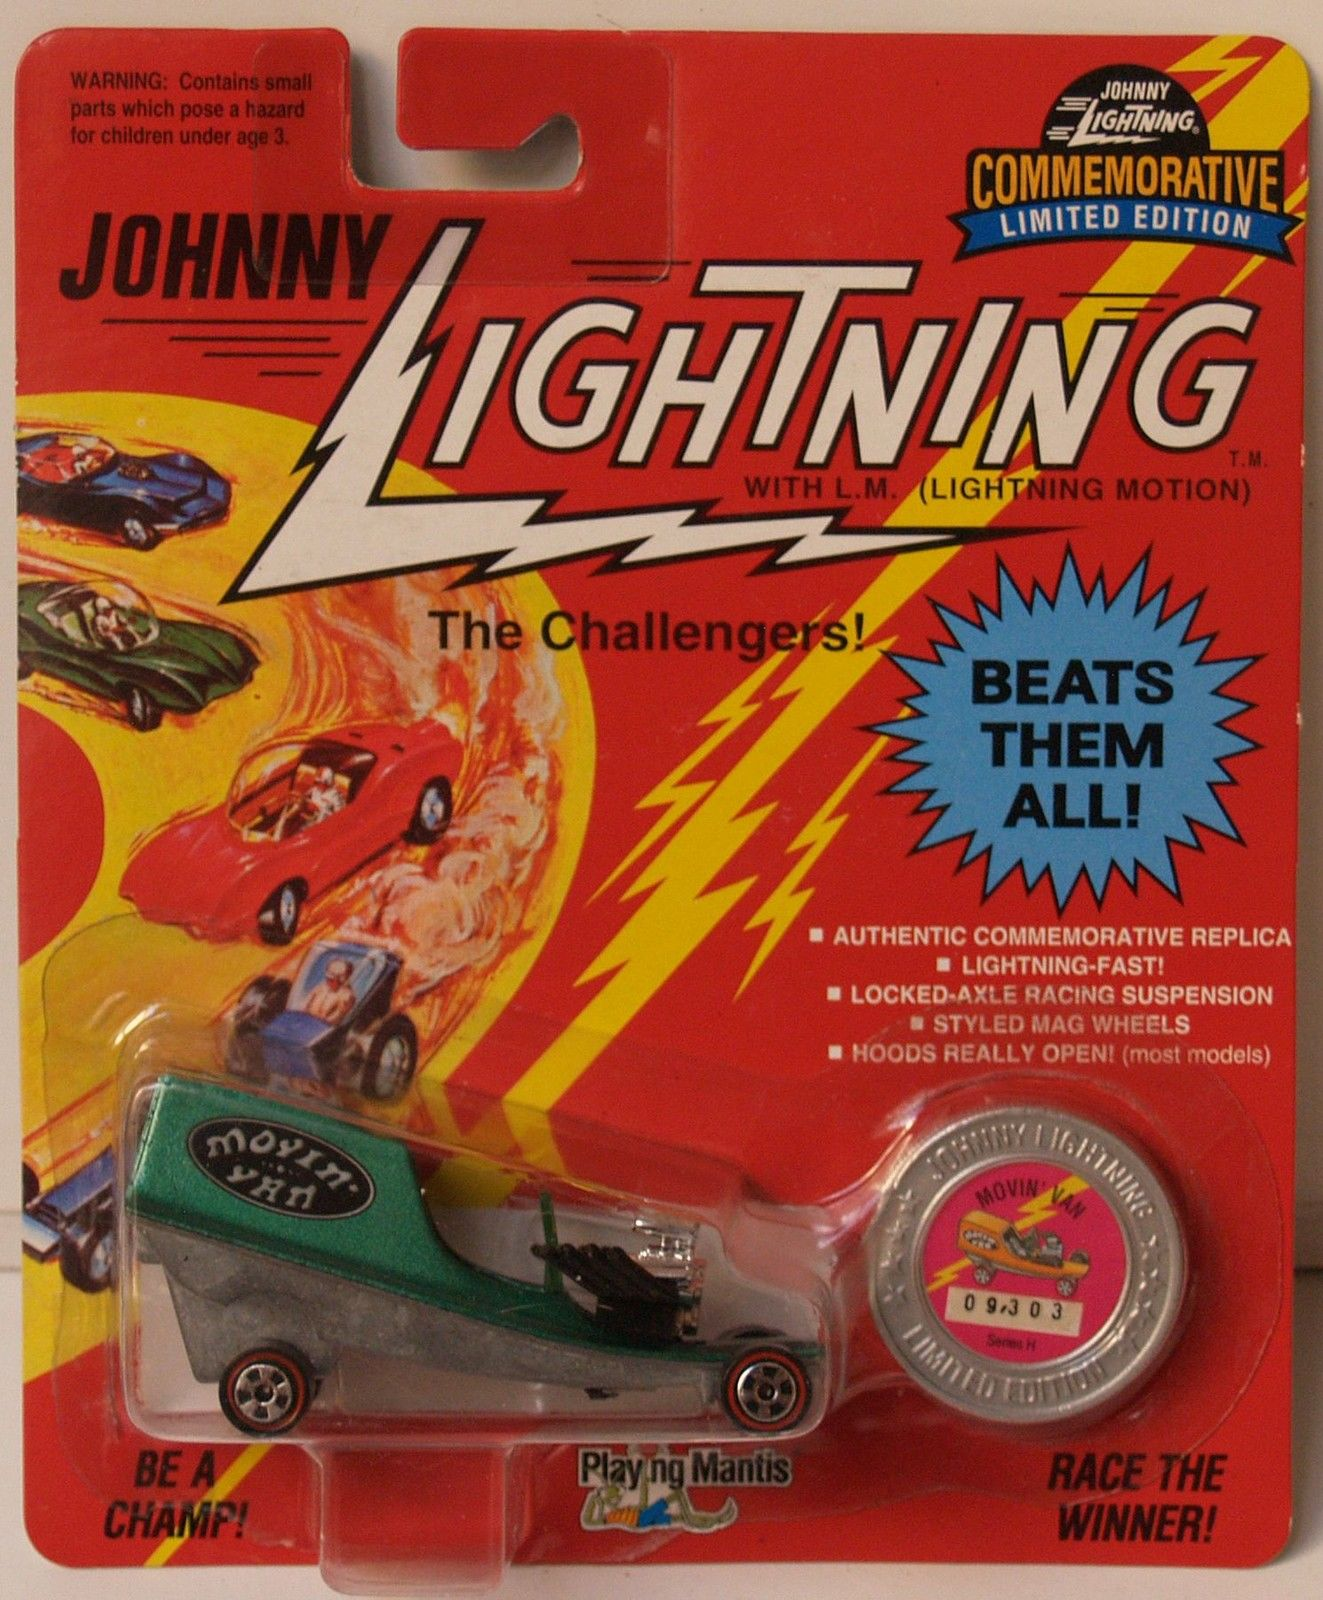 JOHNNY LIGHTNING COMMEMORATIVE - GREEN MOVIN' VAN - SERIES H